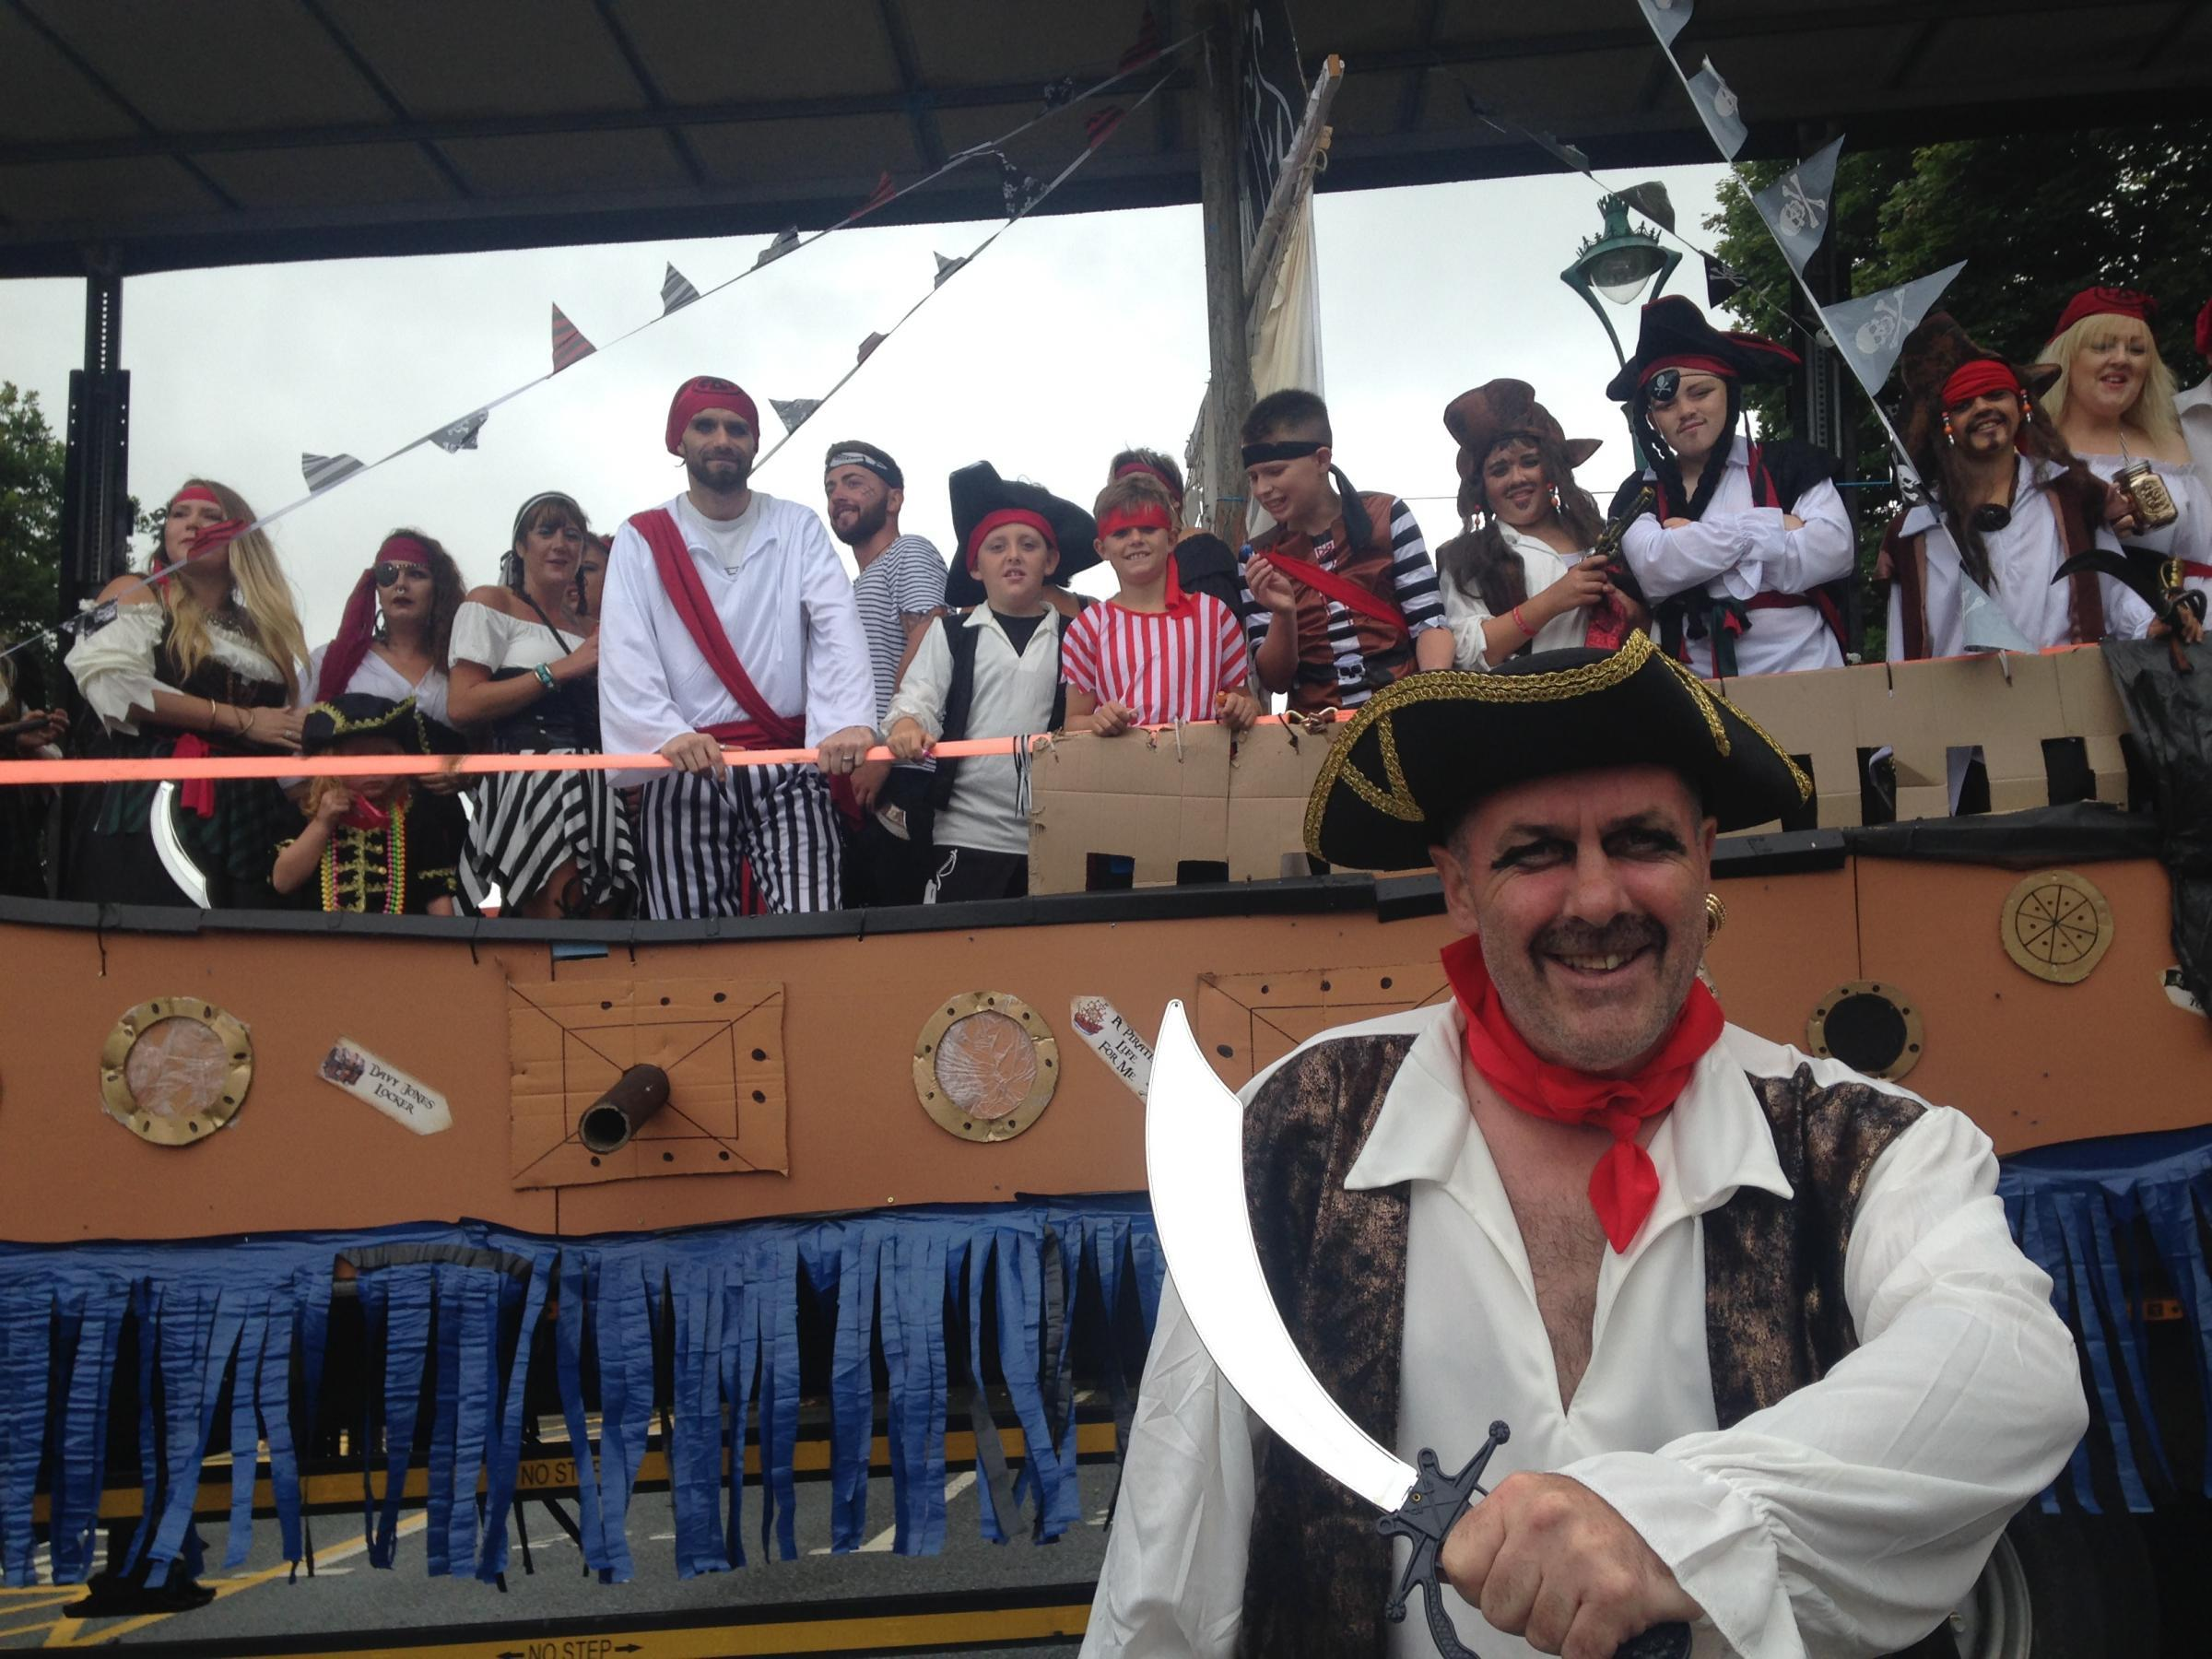 The pirates of Prendergast from last year's carnival.